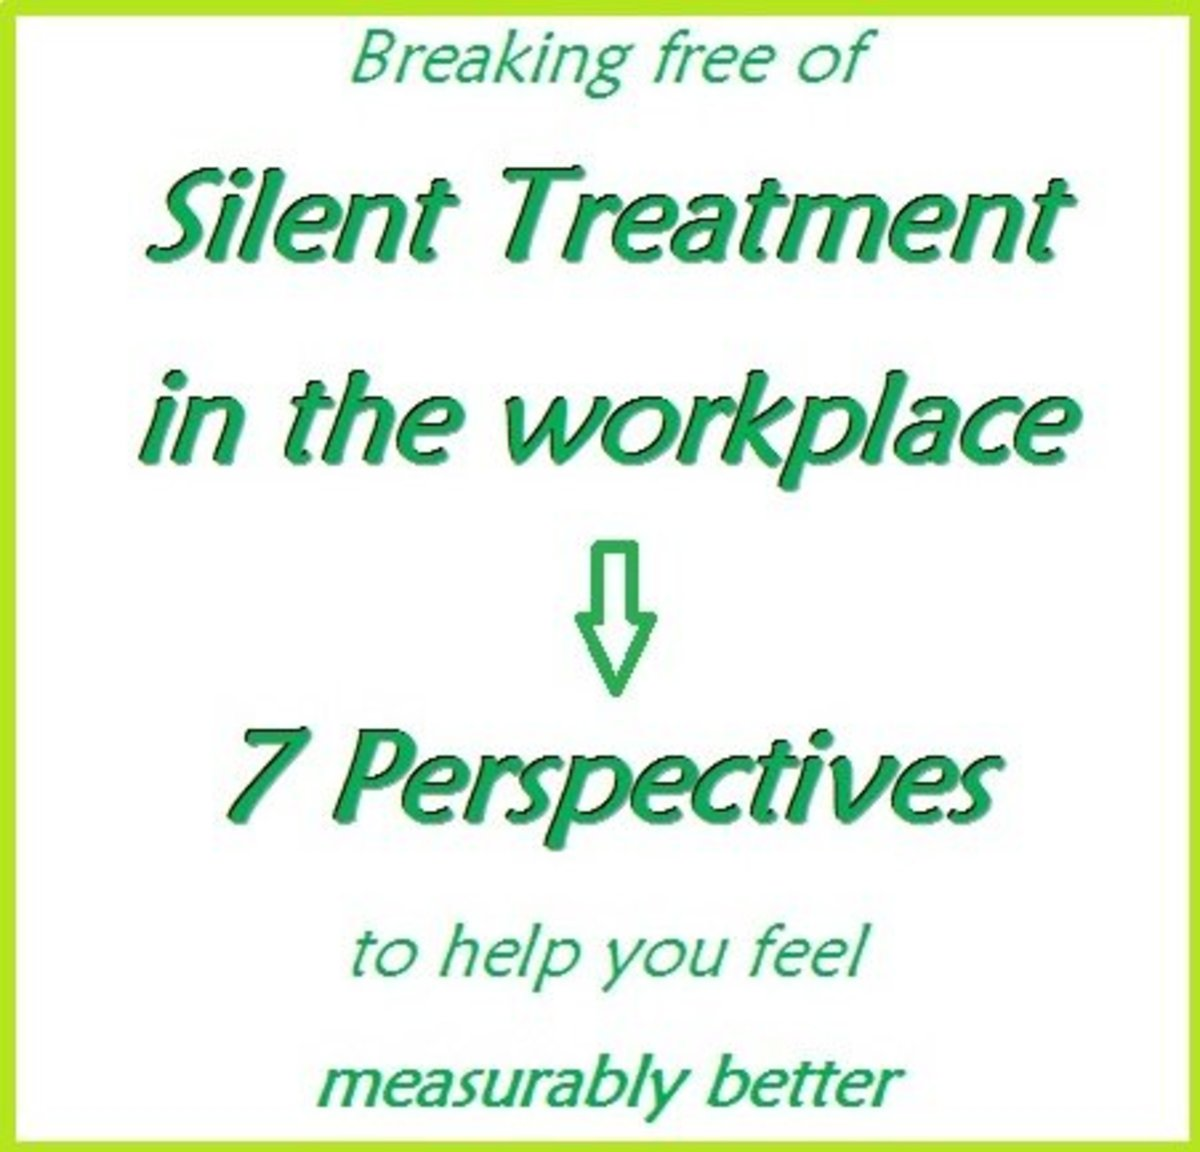 Silent Treatment Stress in the Workplace